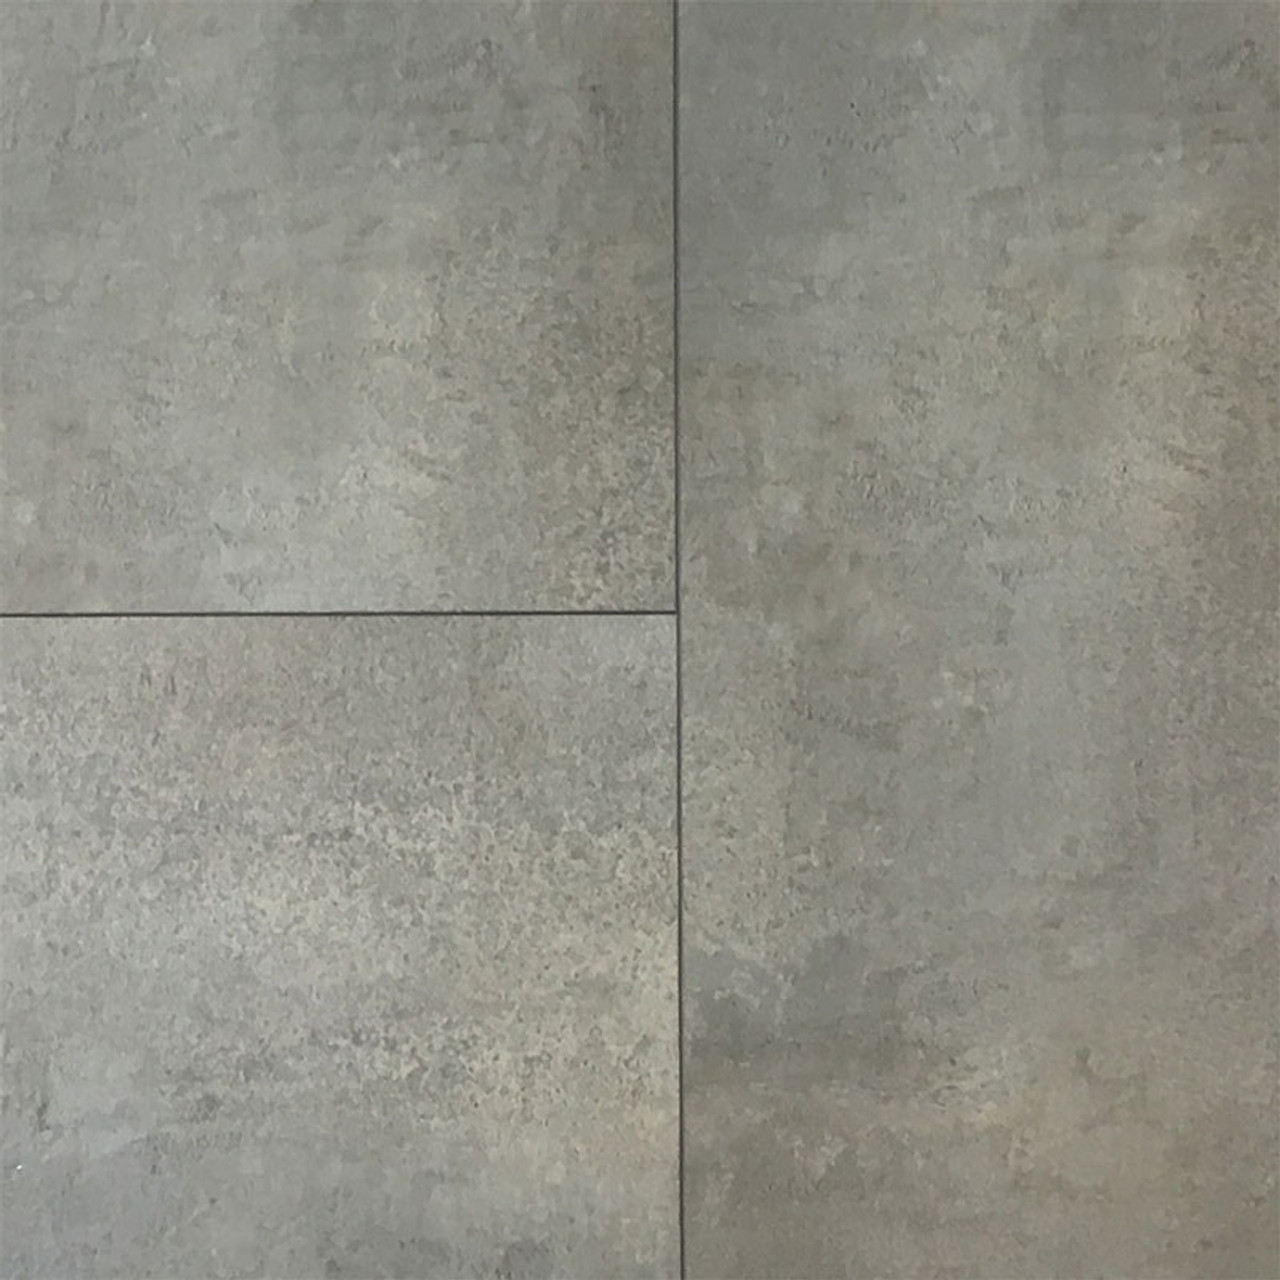 5.2mm Stonewear+ Mineral Vinyl Click Flooring   Stone Product Core (SPC)   Includes 1mm Attached Underpad   23.25 Sq.Ft. Per Box   Sold by the Box